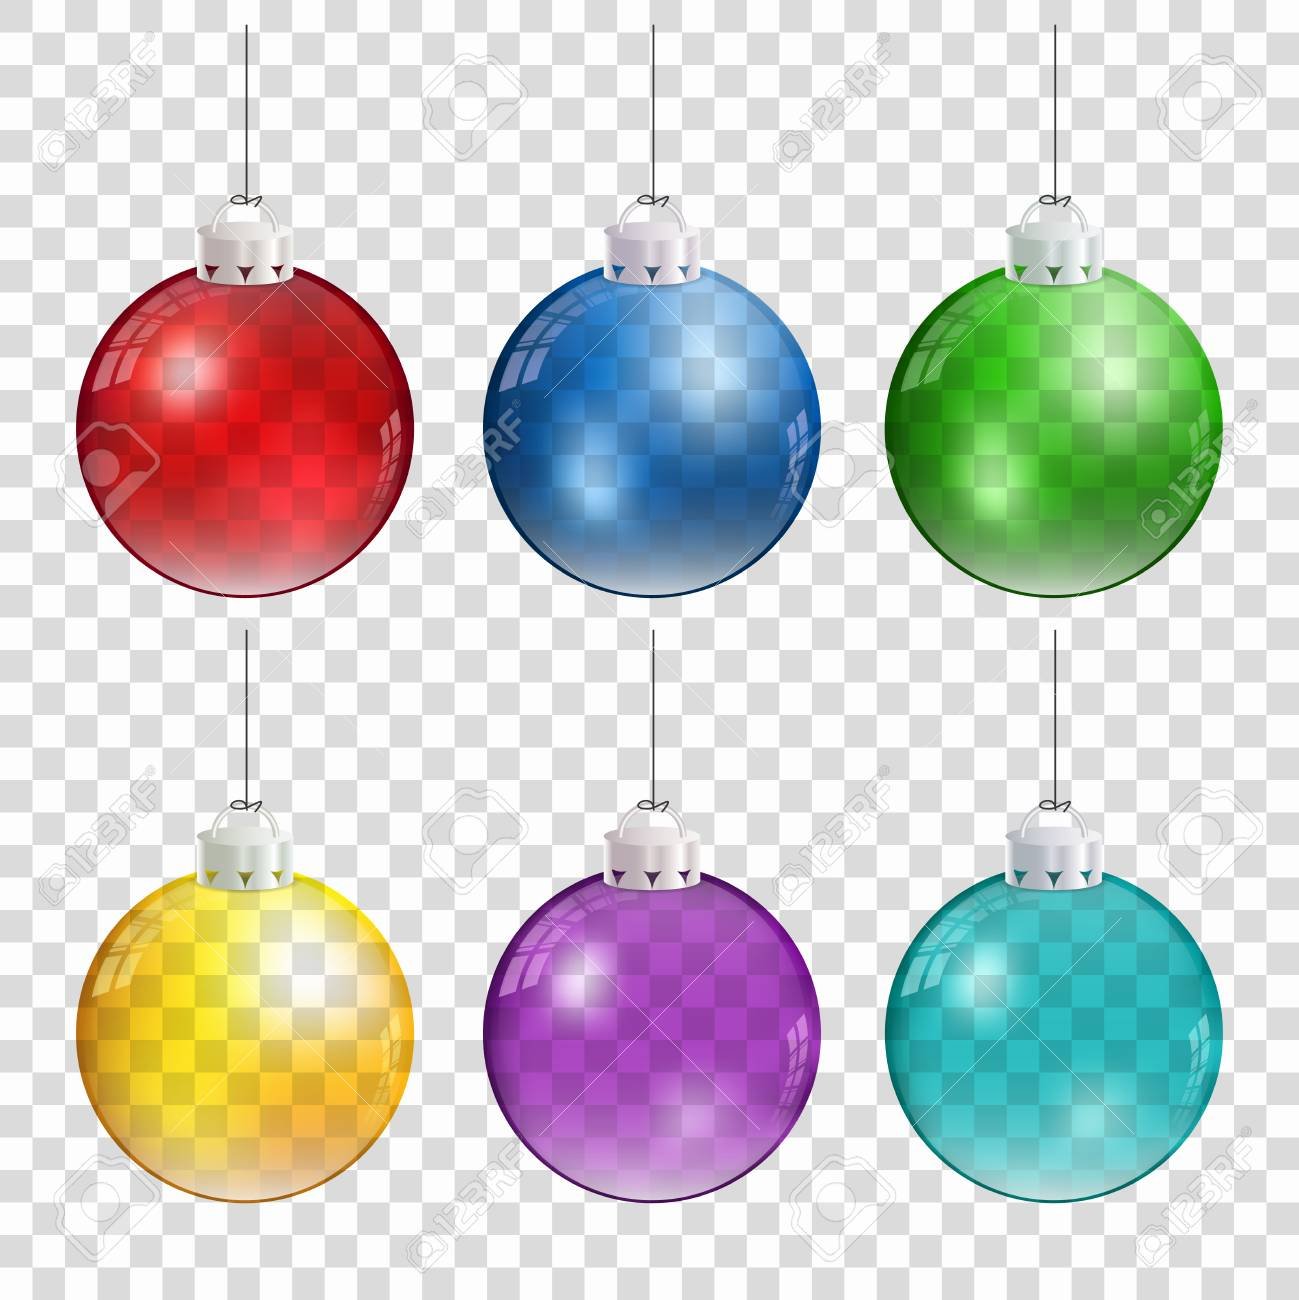 Realistic Christmas Balls In Different Colors Hanging On Transparent Background Stock Vector